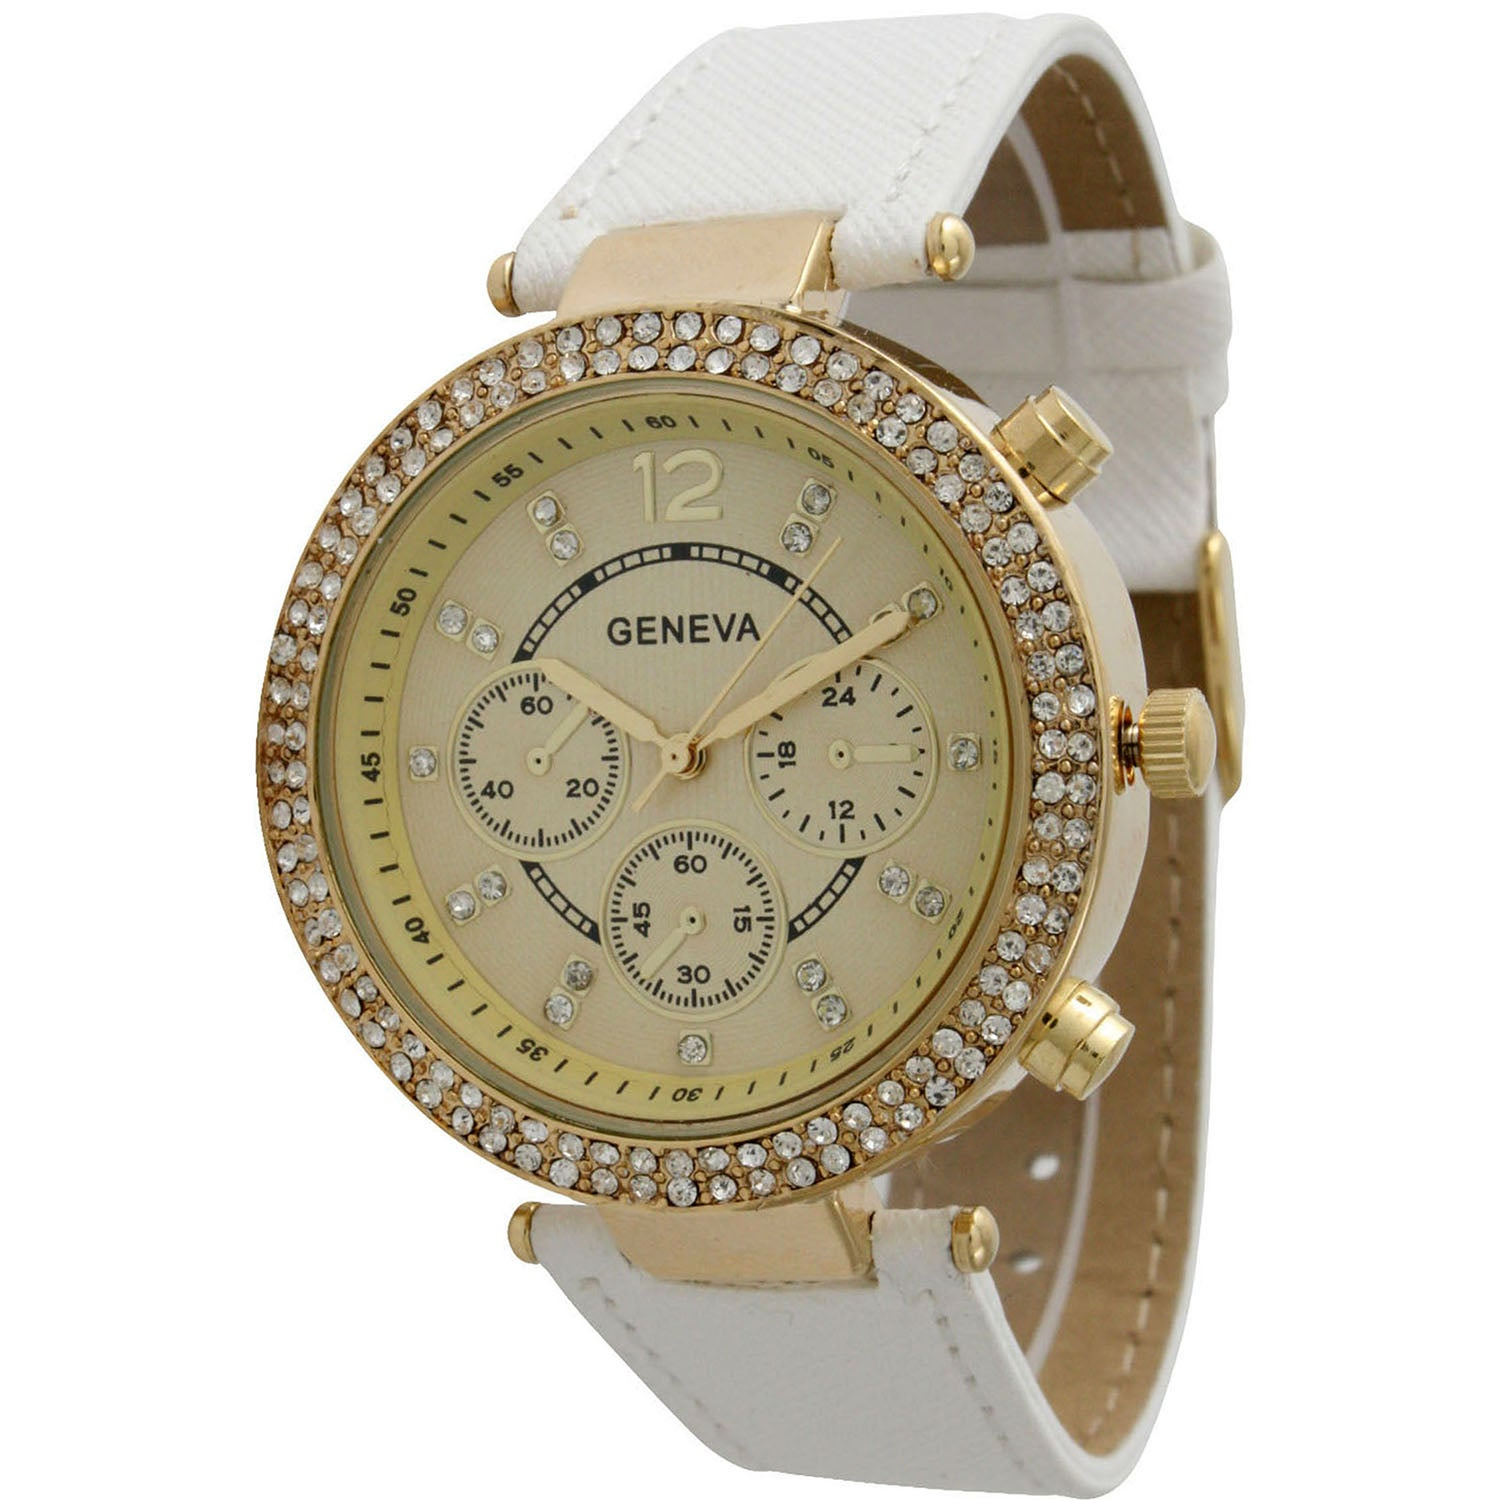 Olivia Pratt Elegant Rhinestone Leather Band Watch